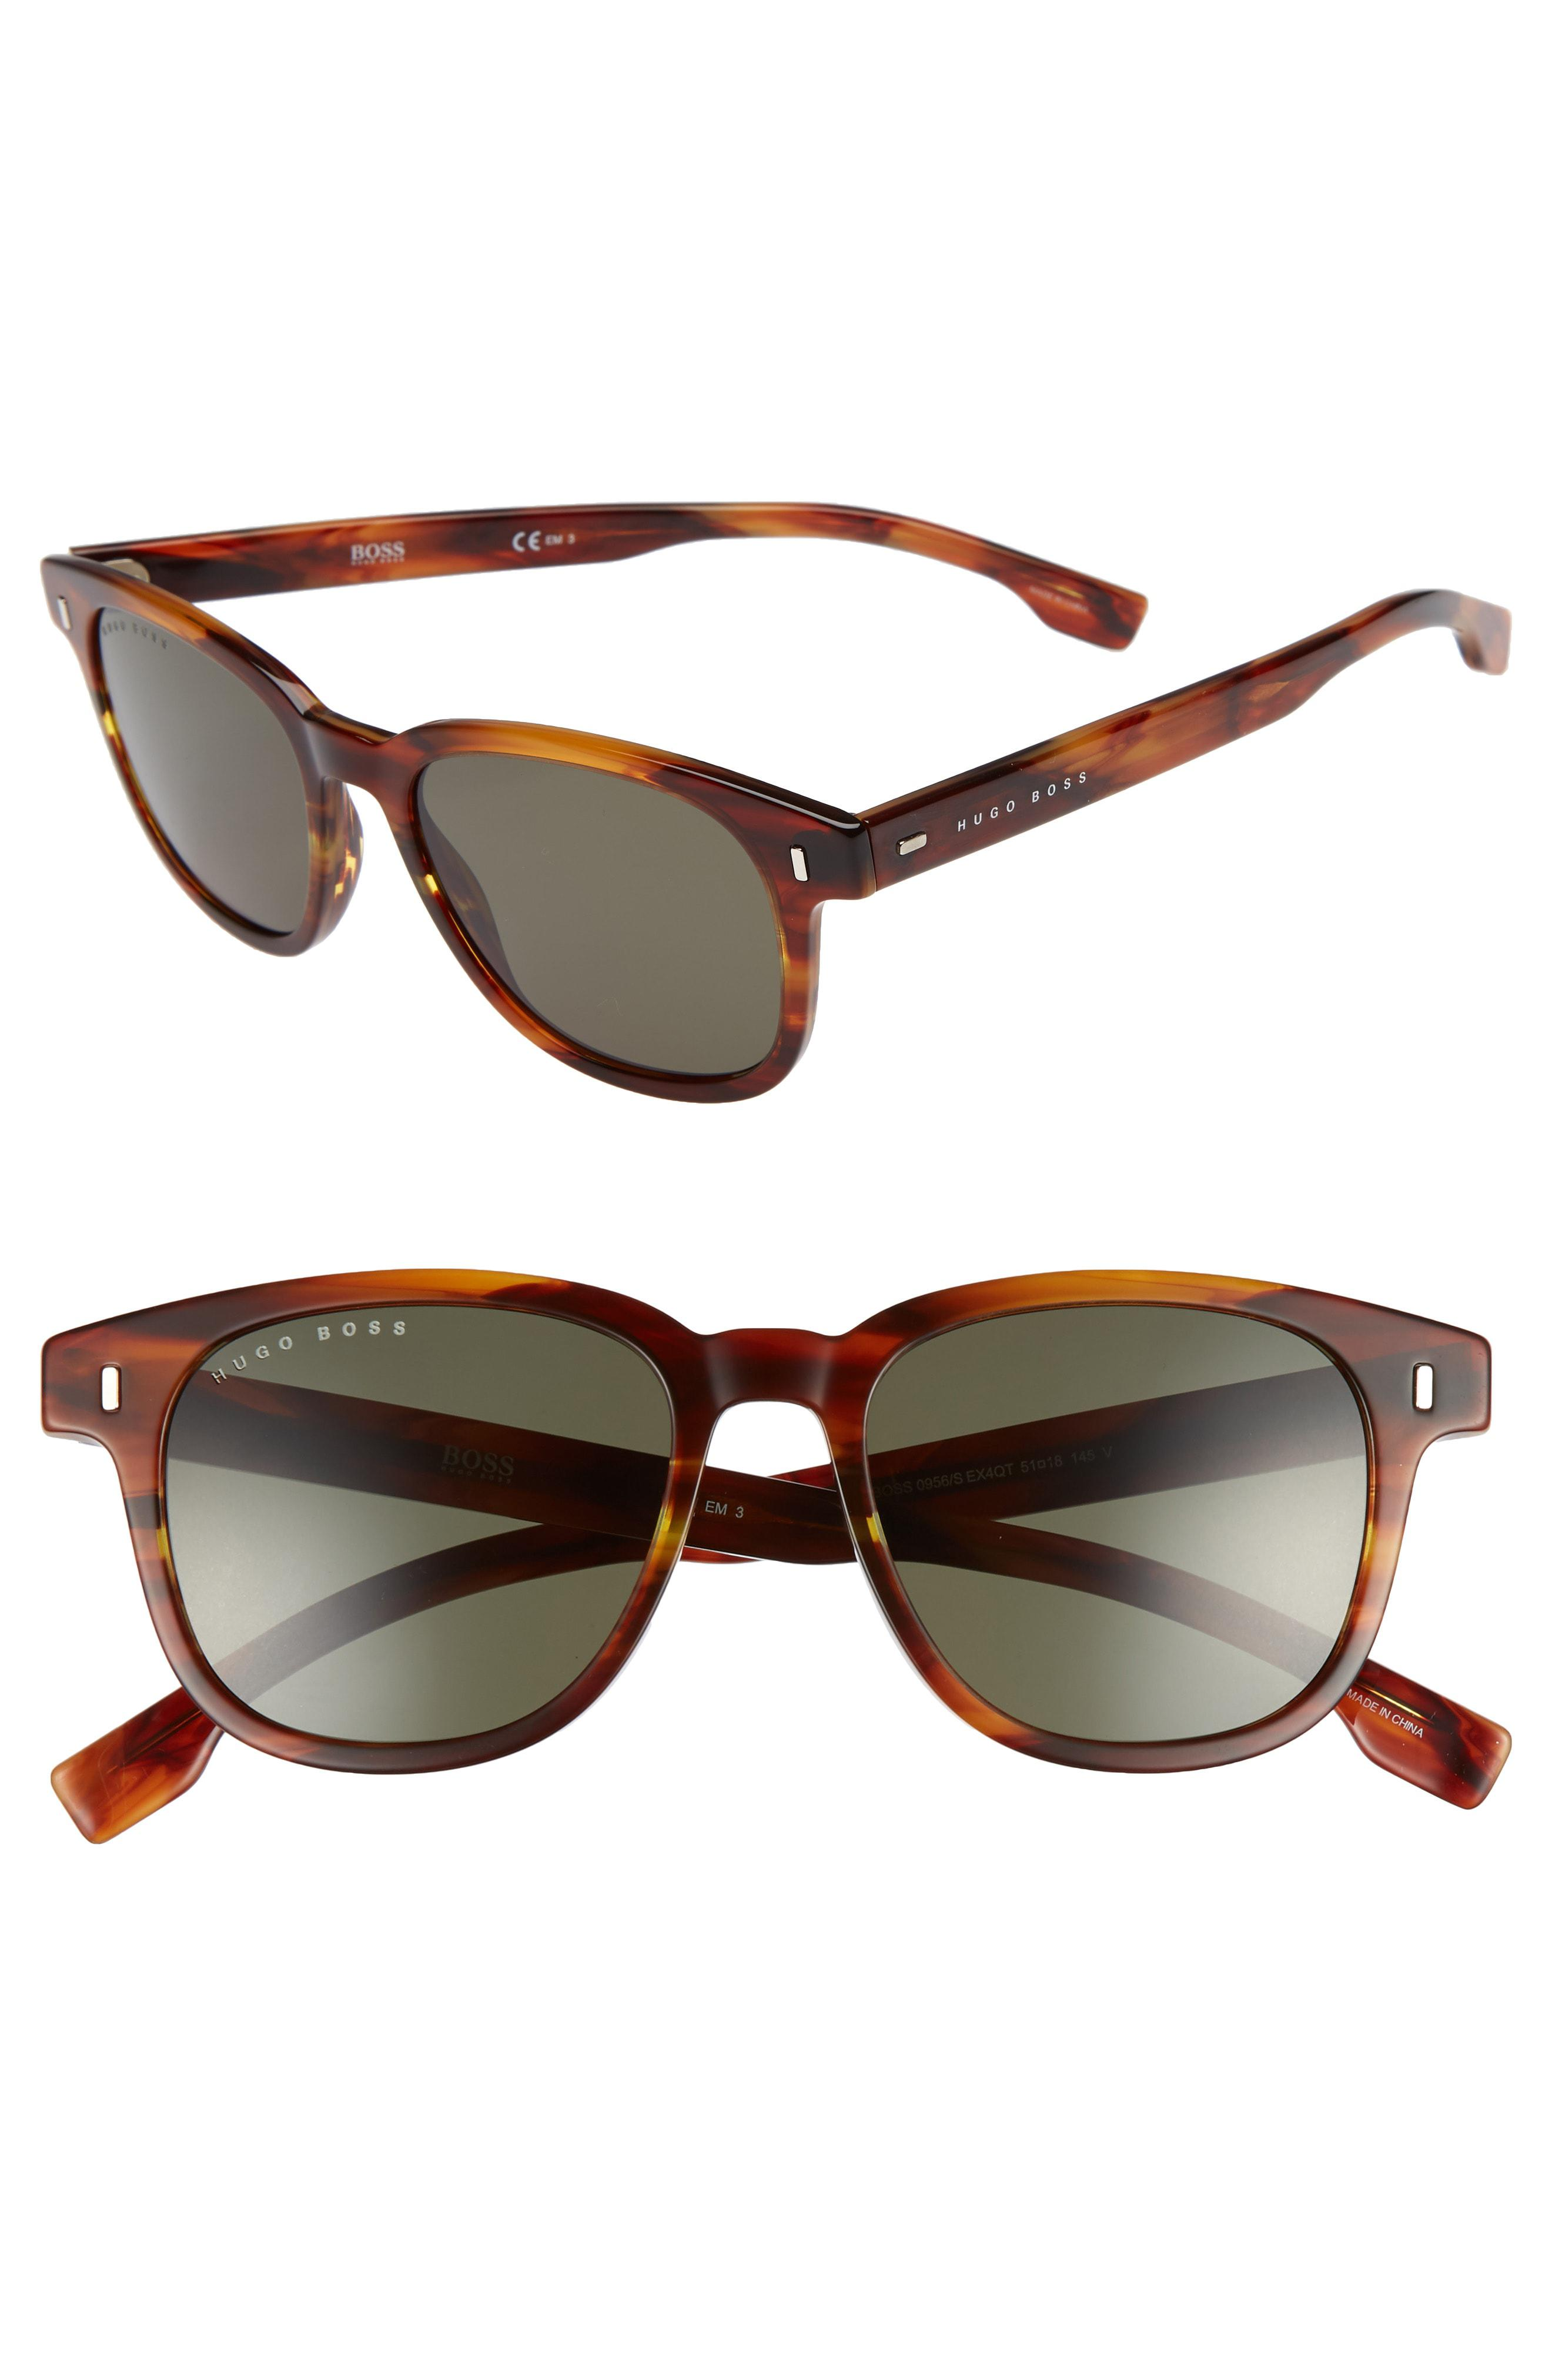 fa1976a95b Lyst - BOSS 51mm Polarized Sunglasses in Brown for Men